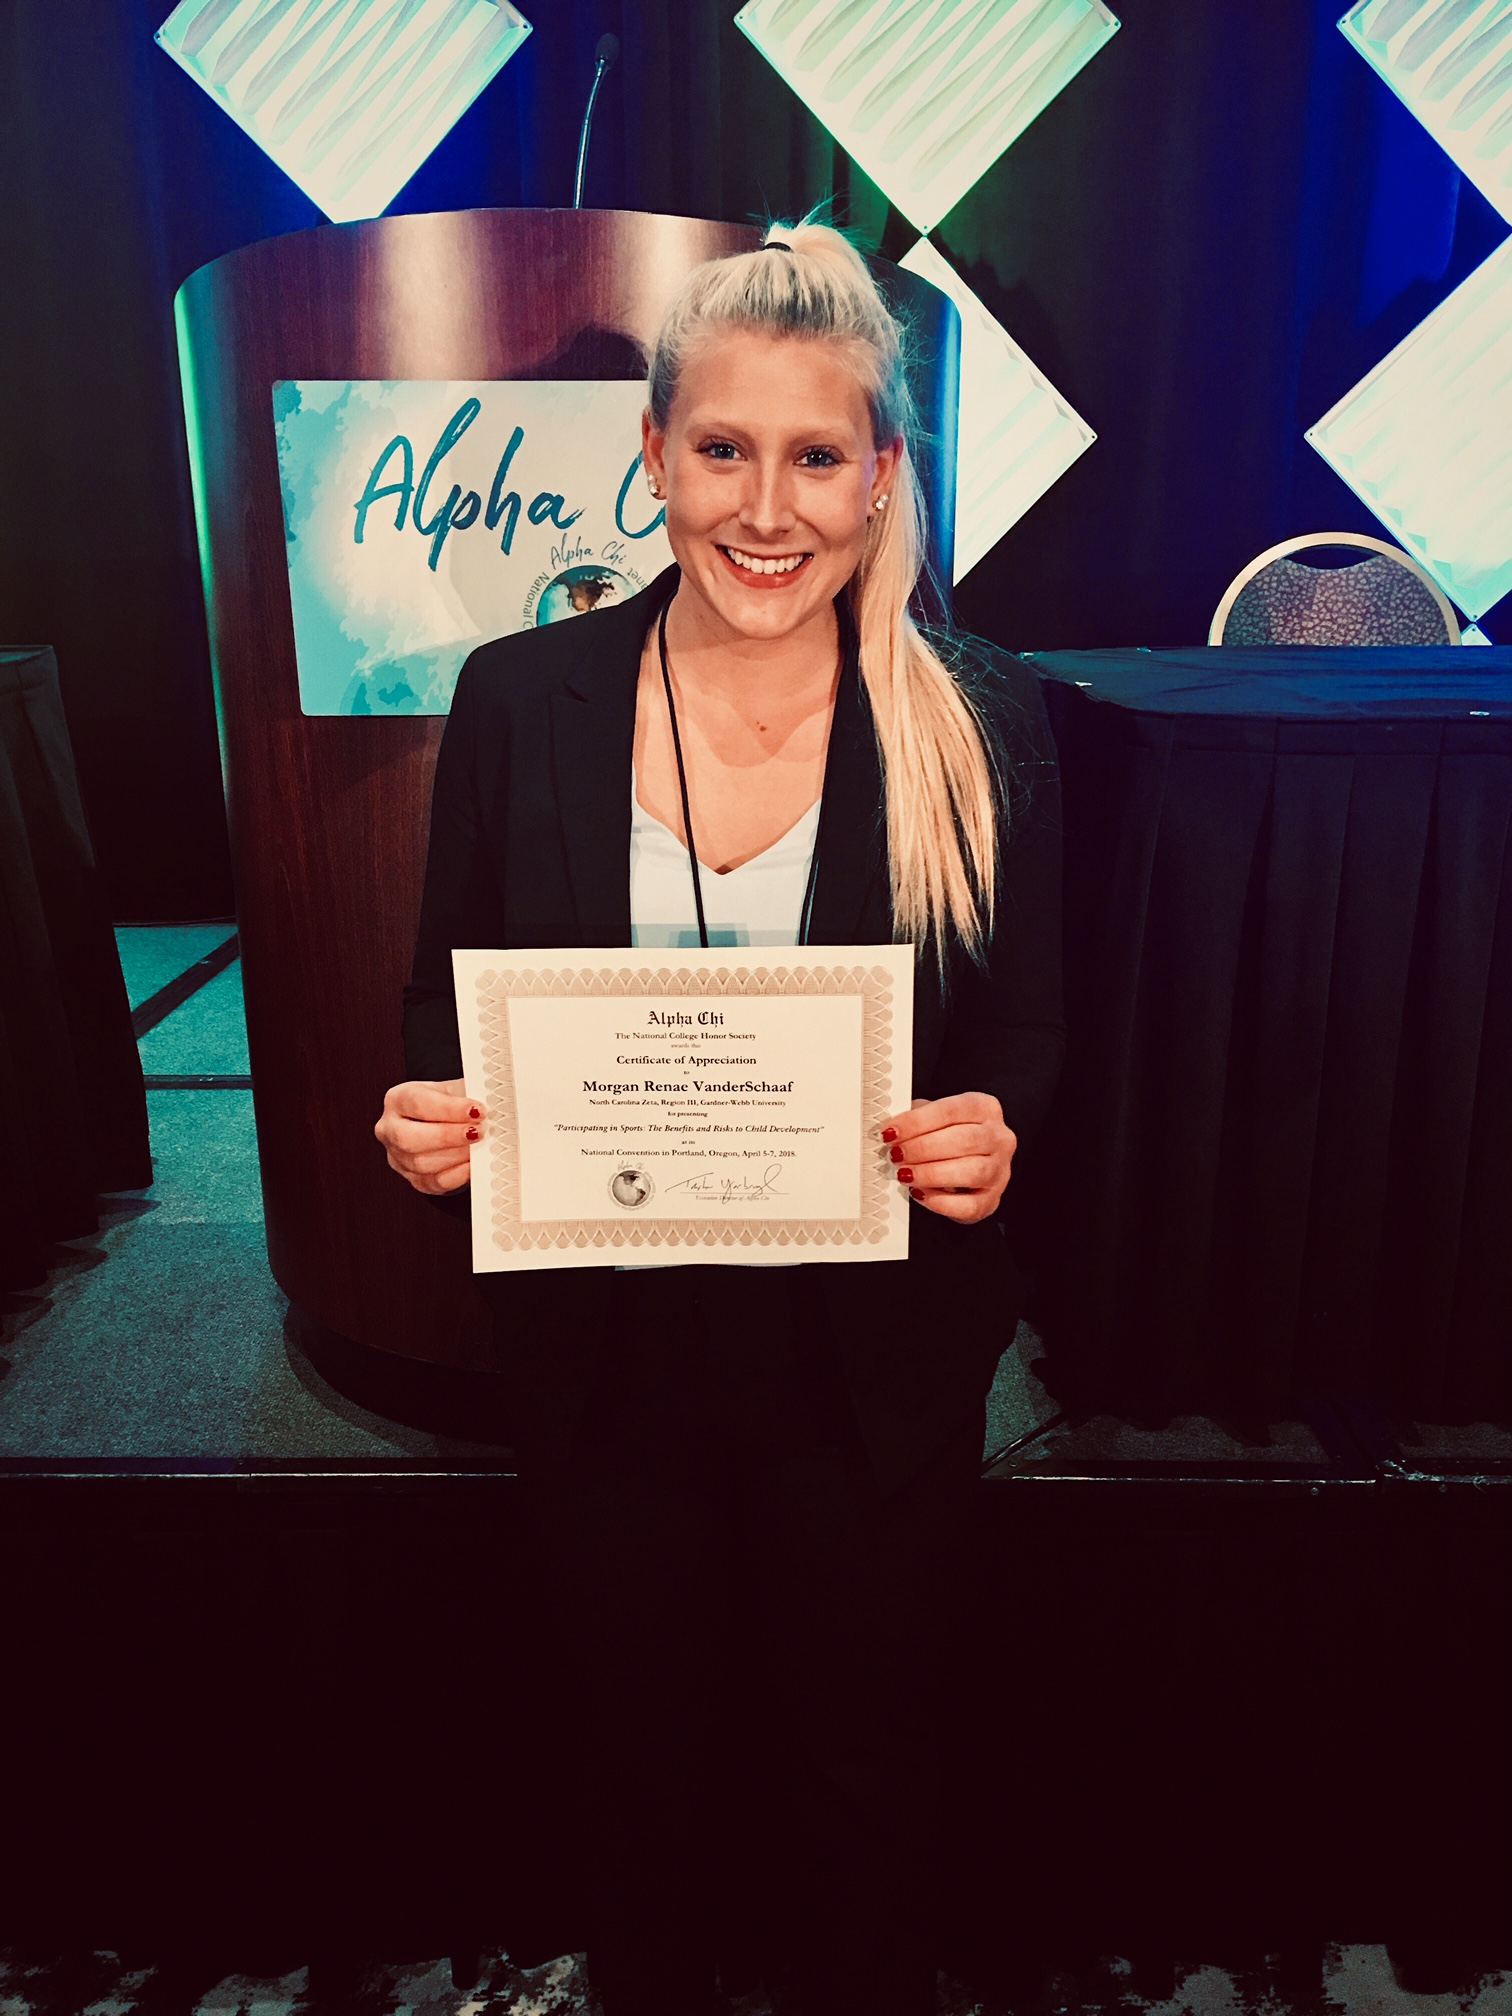 Morgan at the Alpha Chi National Conference in Cleveland, Ohio, posing with her certificate of appreciation for presenting her research project.